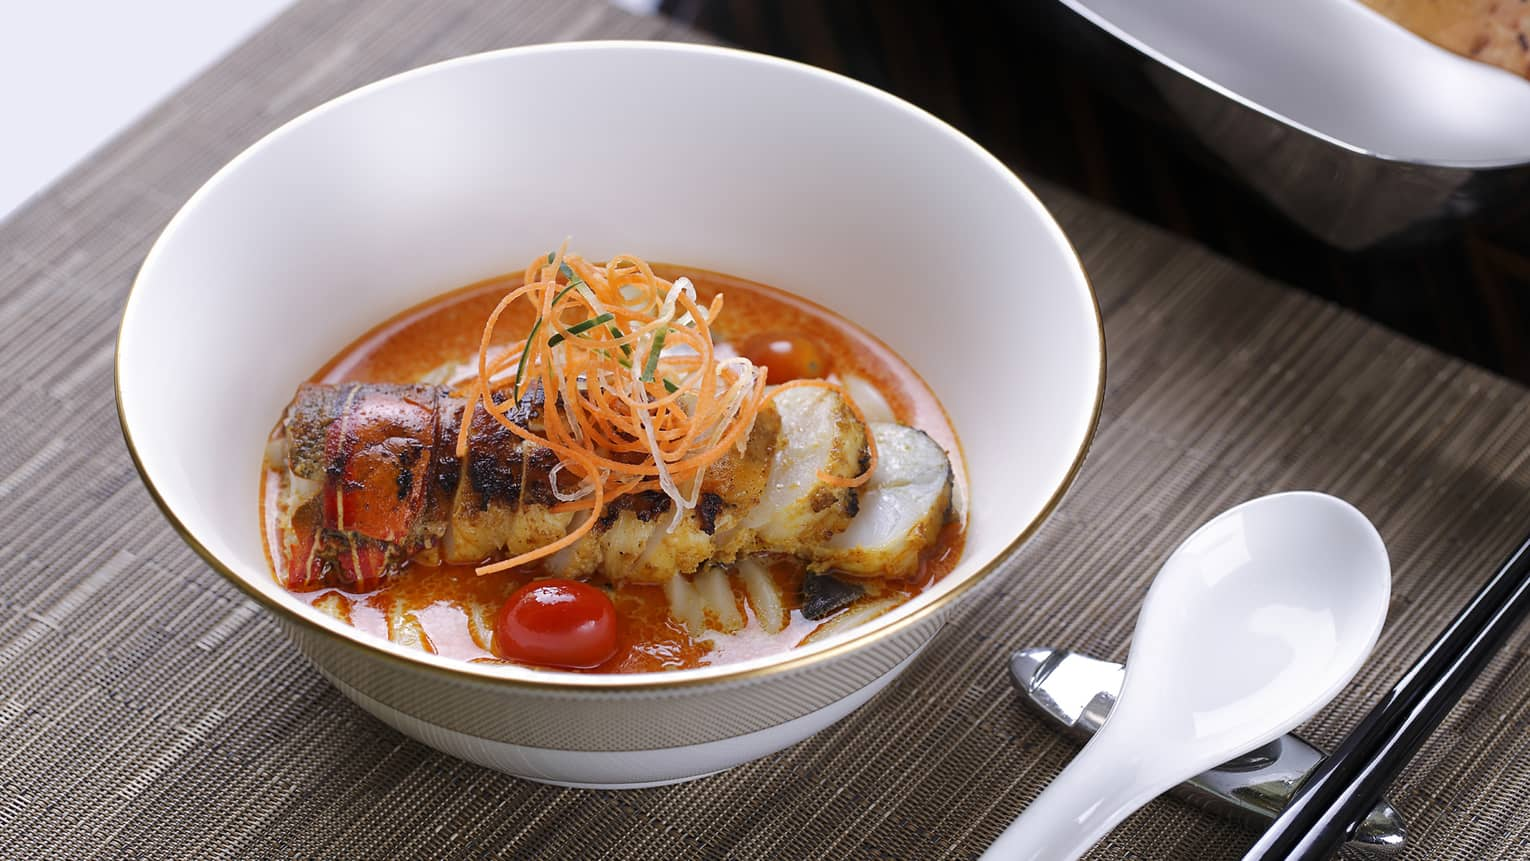 Bowl with lobster in red sauce, carrot garnish